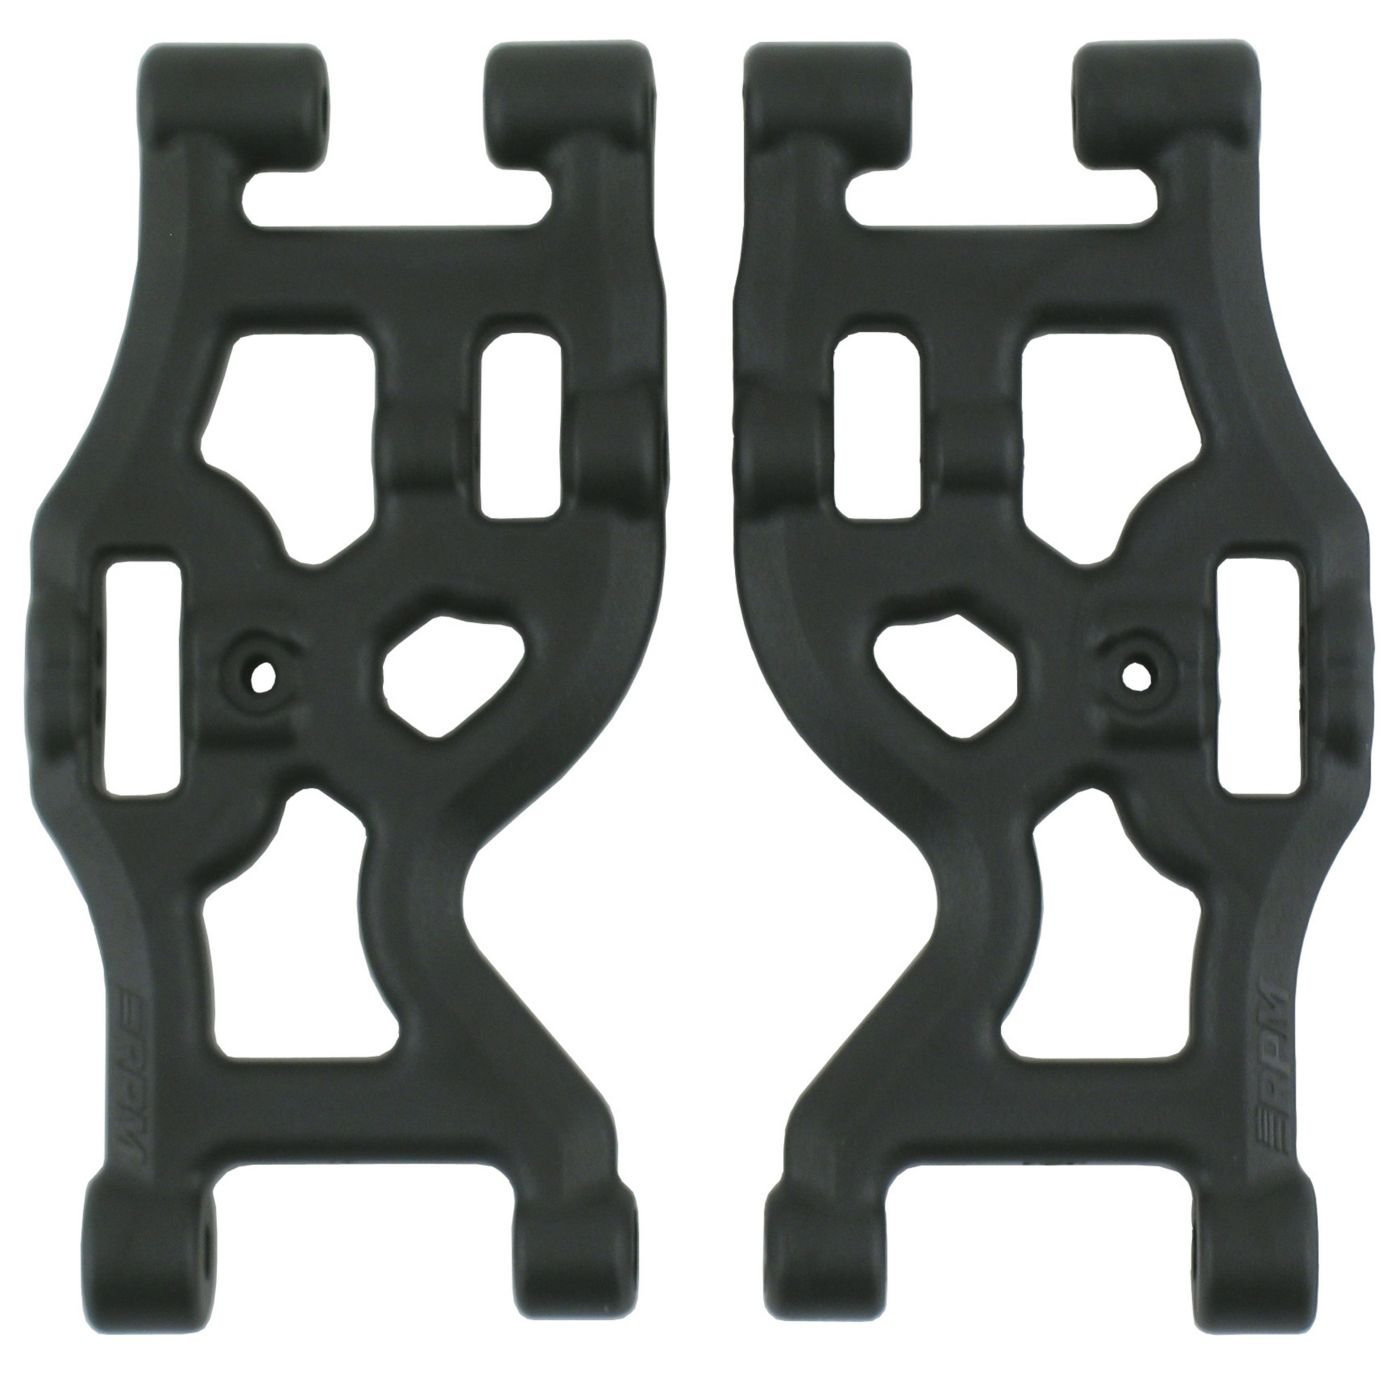 RPM Front A-Arms for ASC SC10 4x4, Black HRP Distribution RPM73962